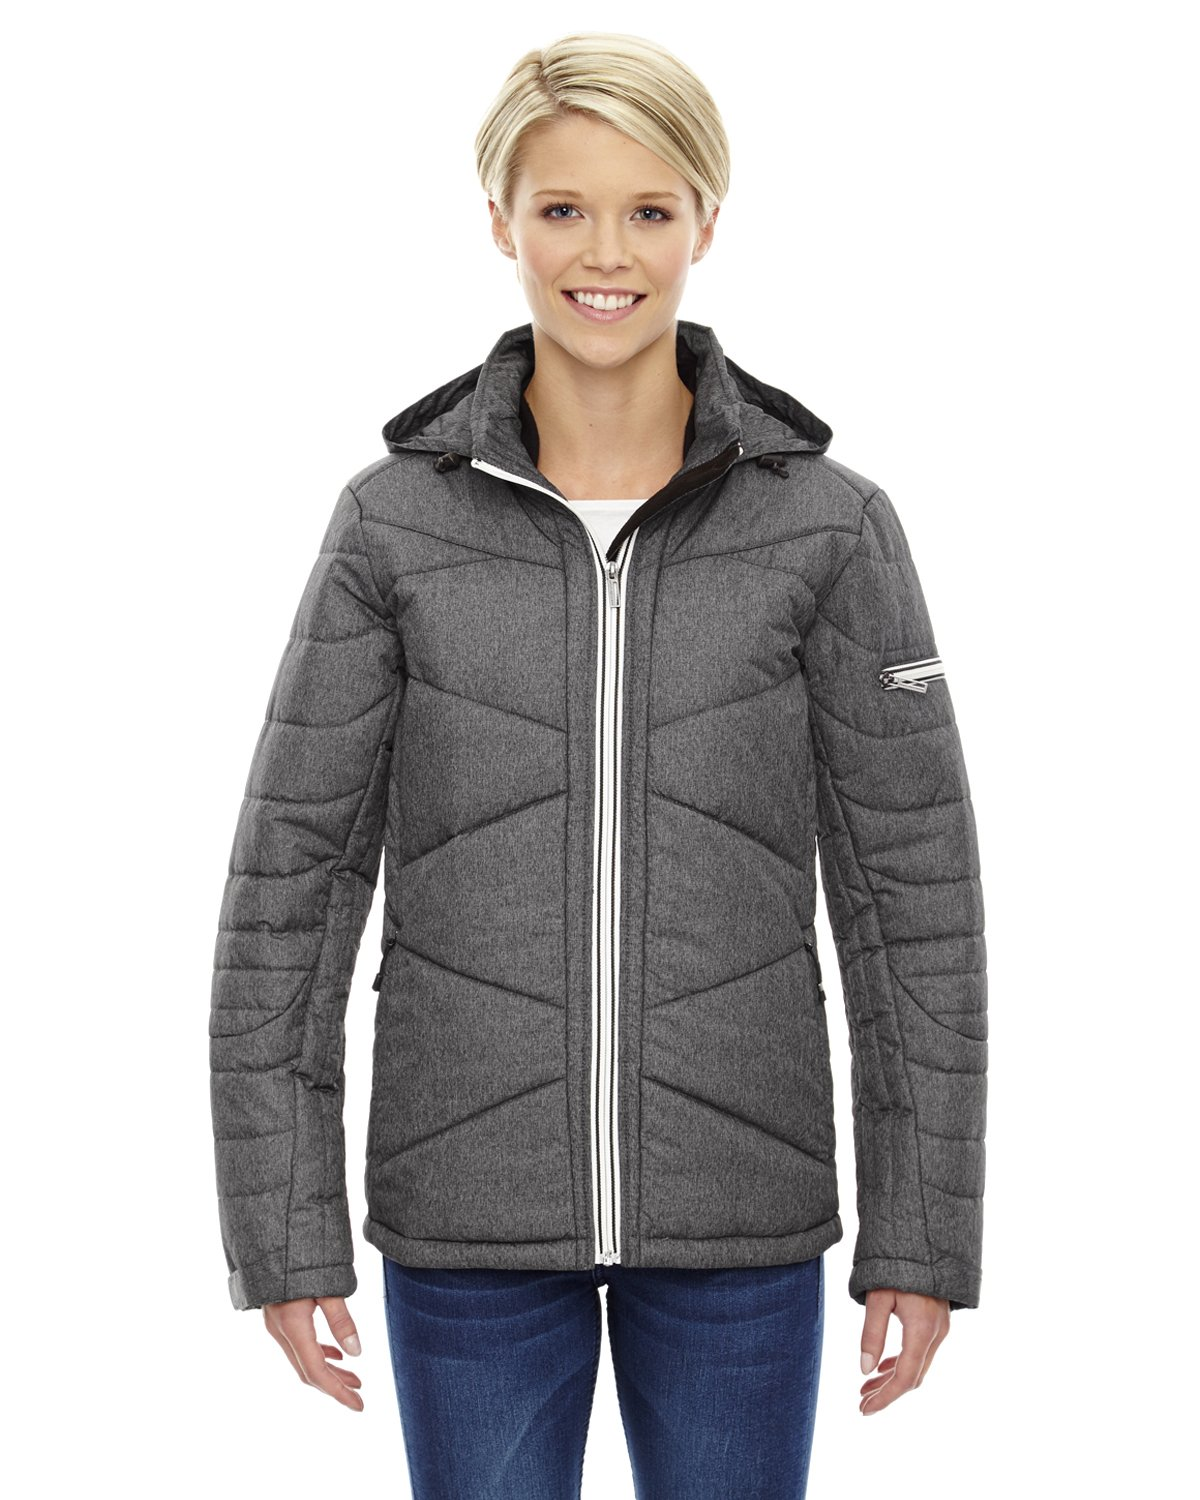 Ash City Apparel North End Sport Avant Ladies Tech Melange Insulated Jacket (X-Small, Carbon/Heather)